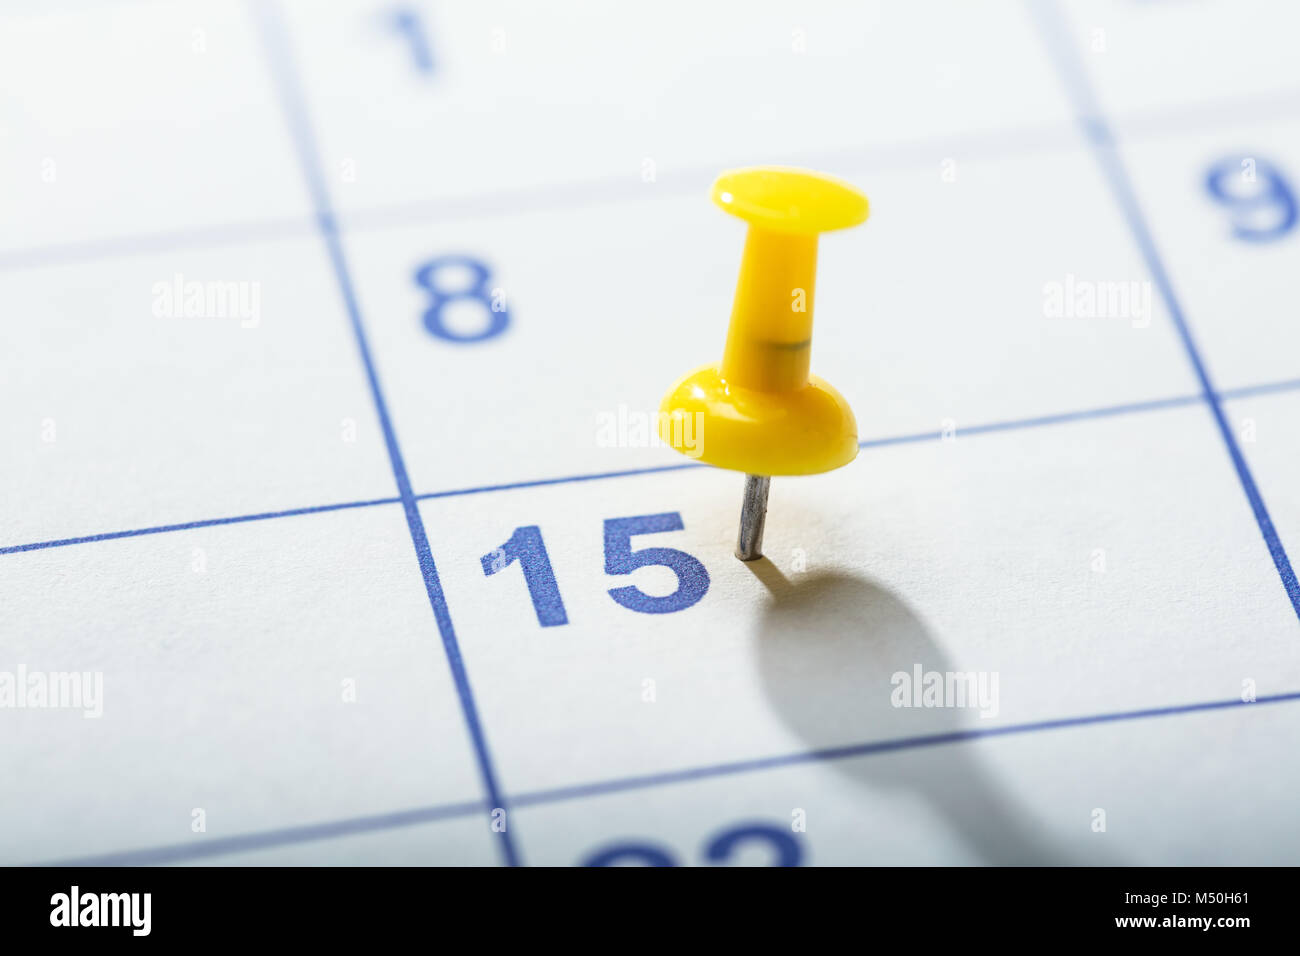 Close-up Of Yellow Thumbtack Stuck On Date 15th In Calendar - Stock Image